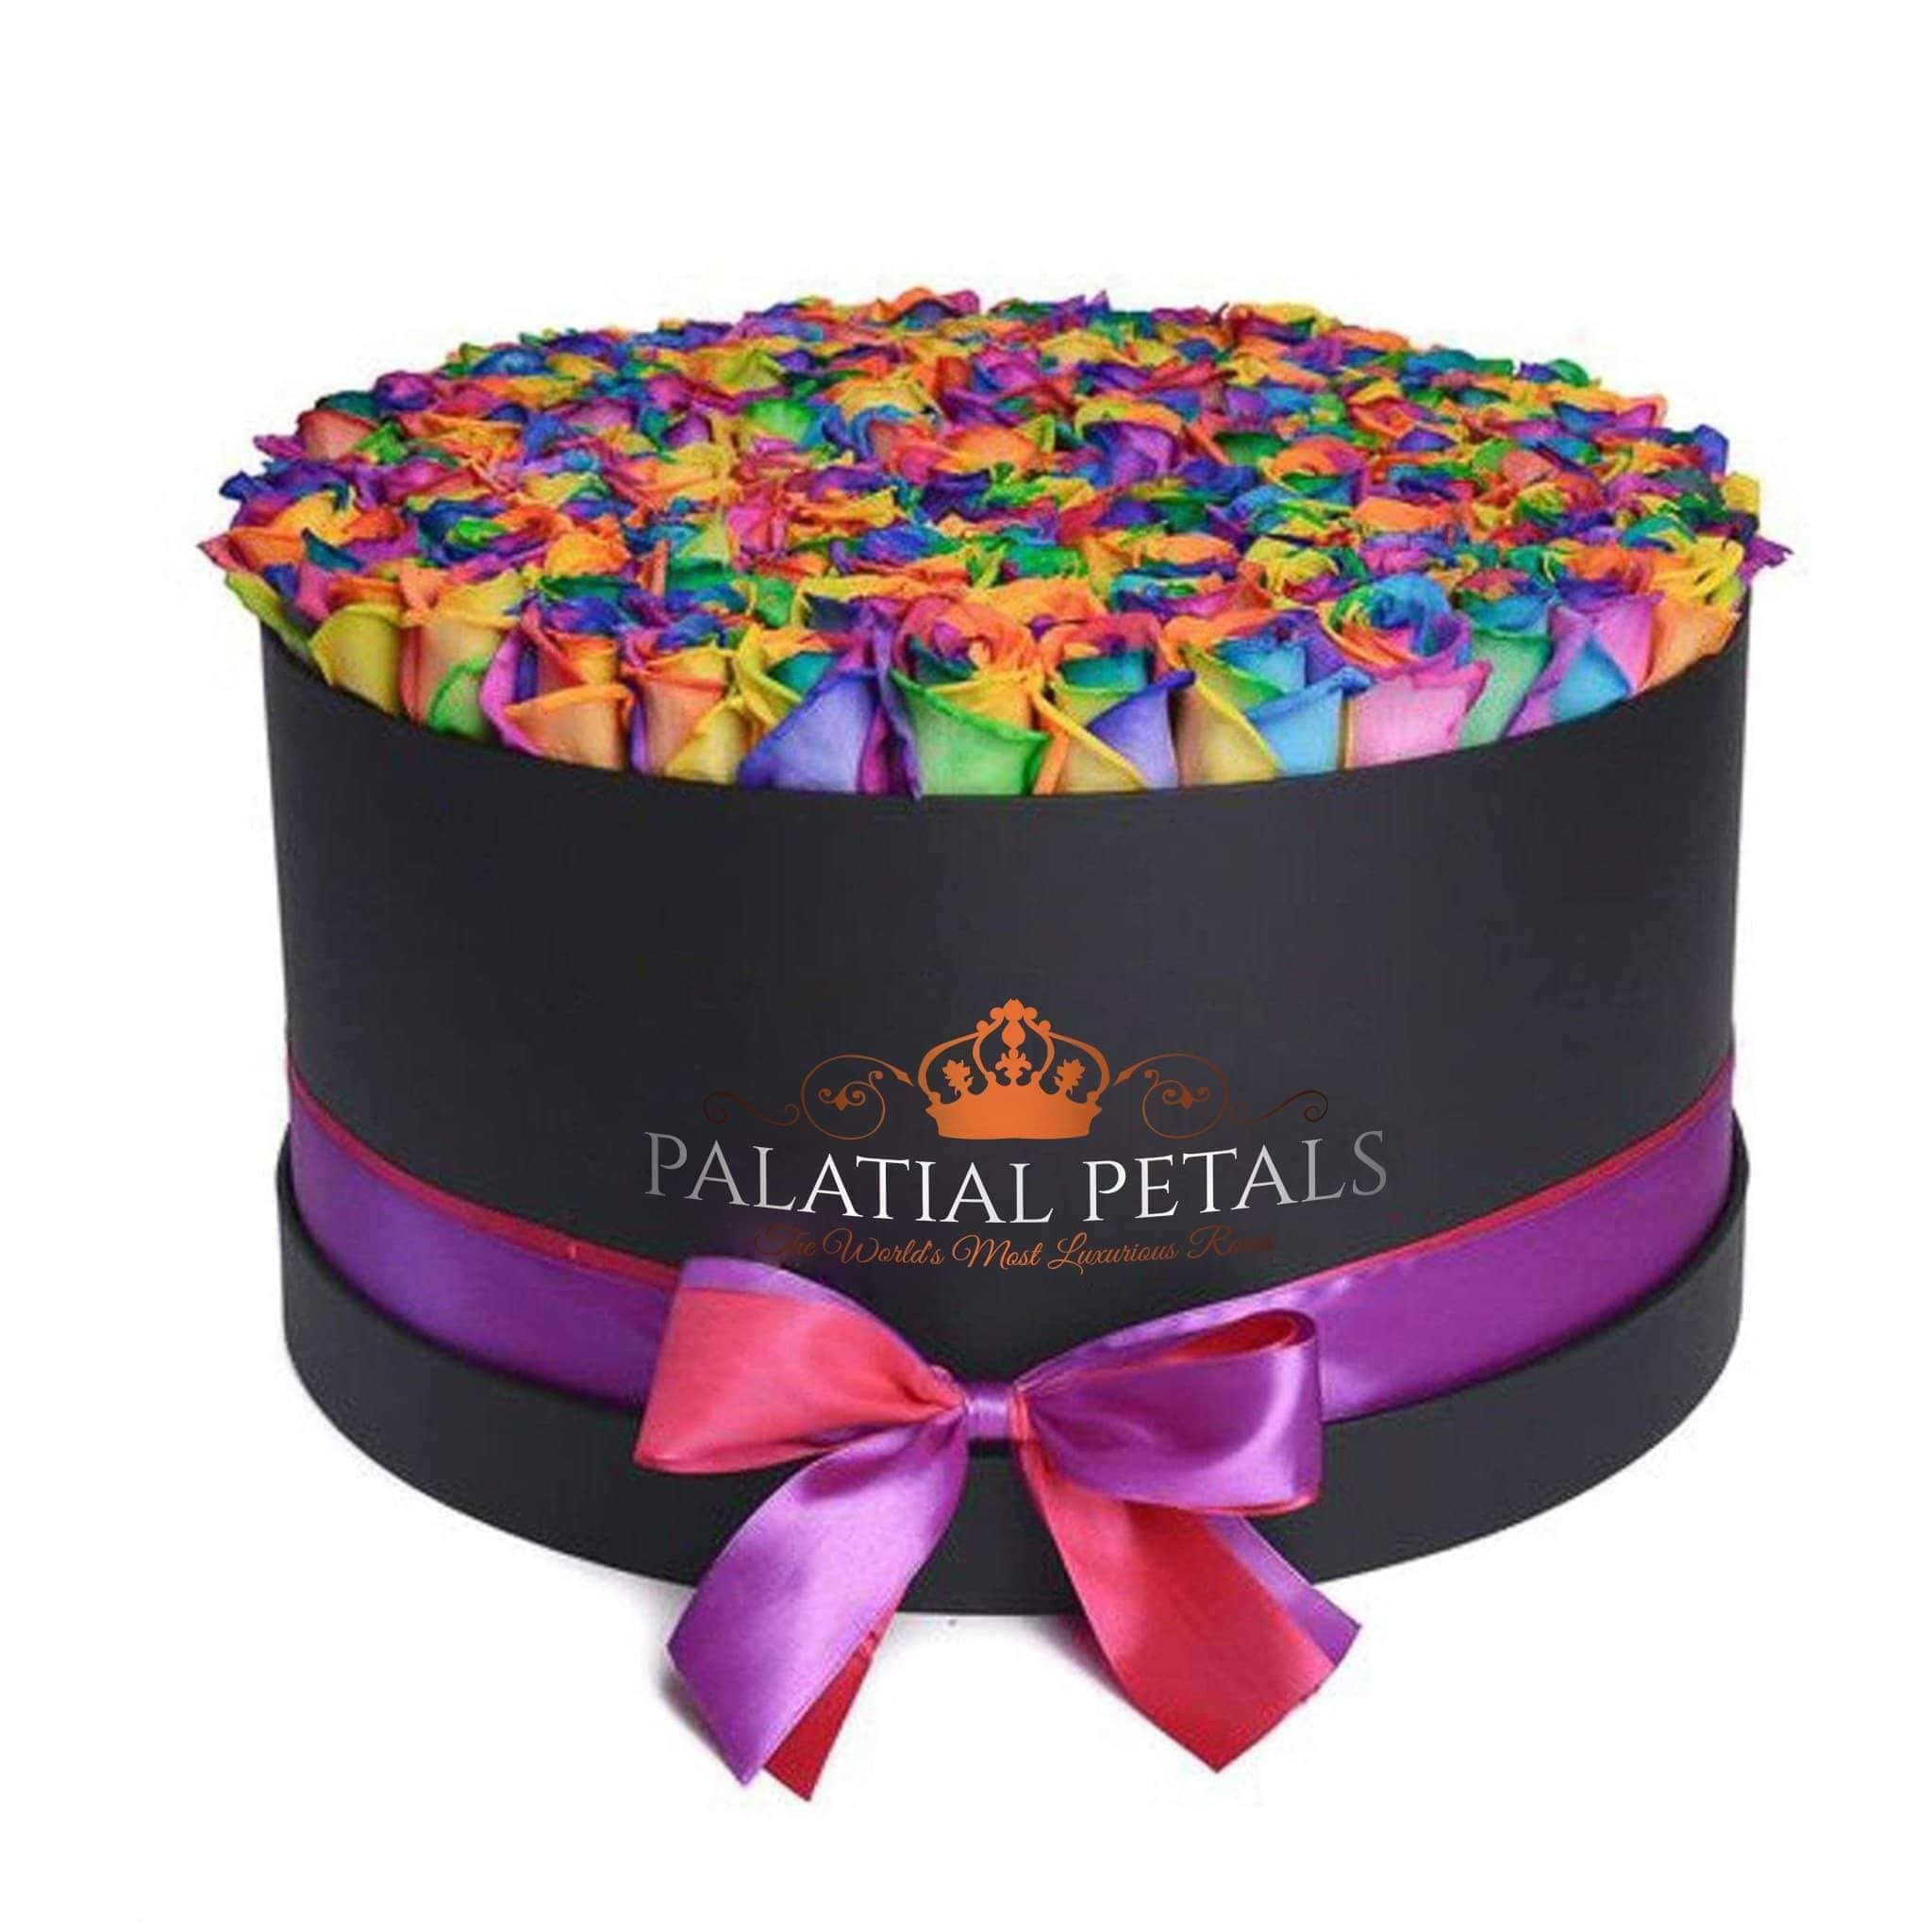 Rainbow Roses That Last A Year - Deluxe Rose Box - Palatial Petals